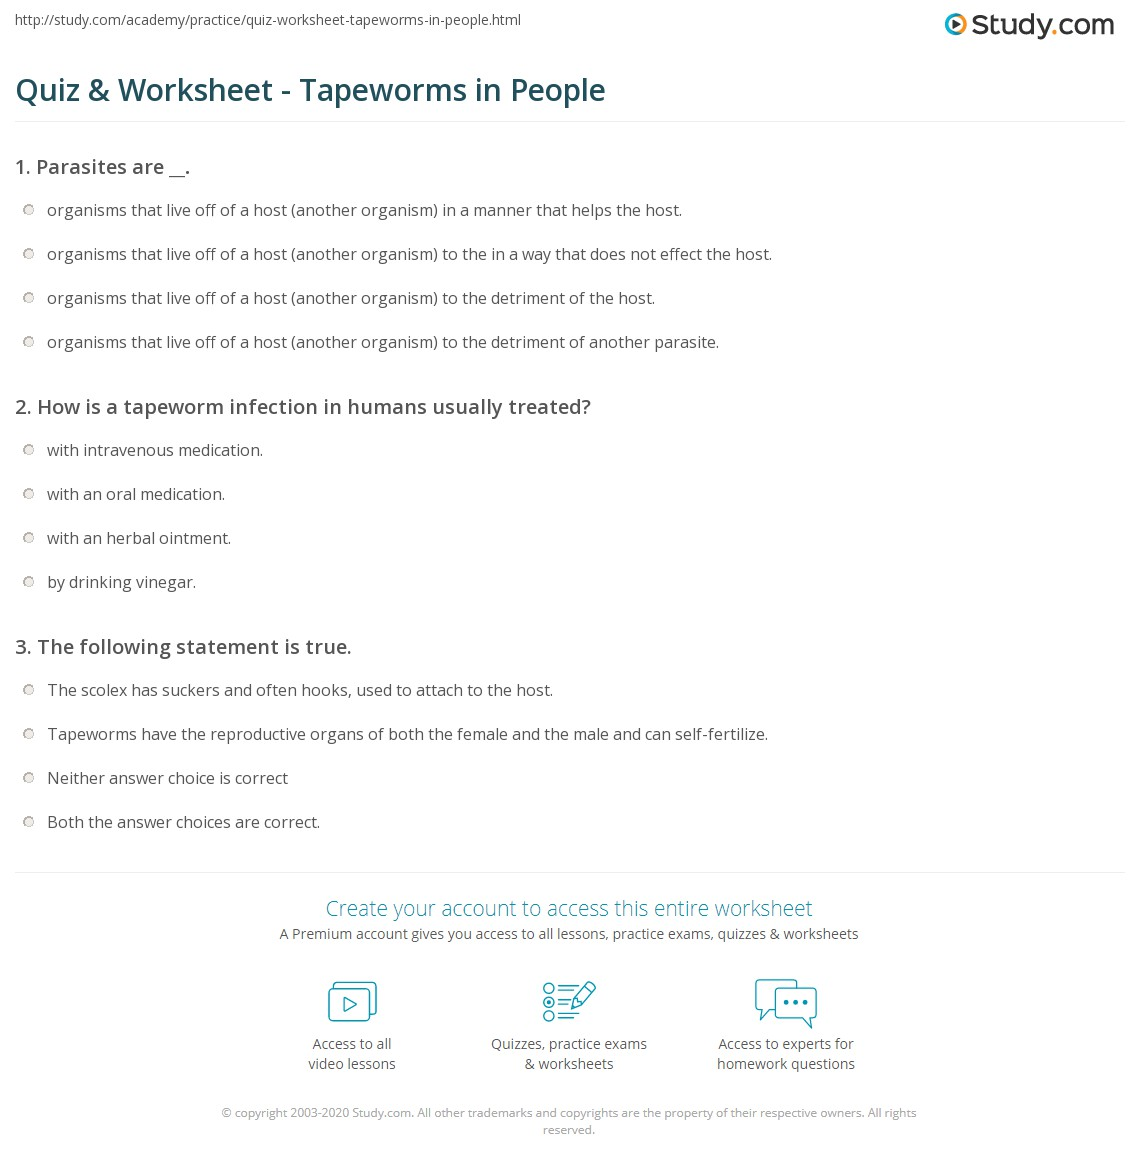 Quiz & Worksheet - Tapeworms in People | Study.com